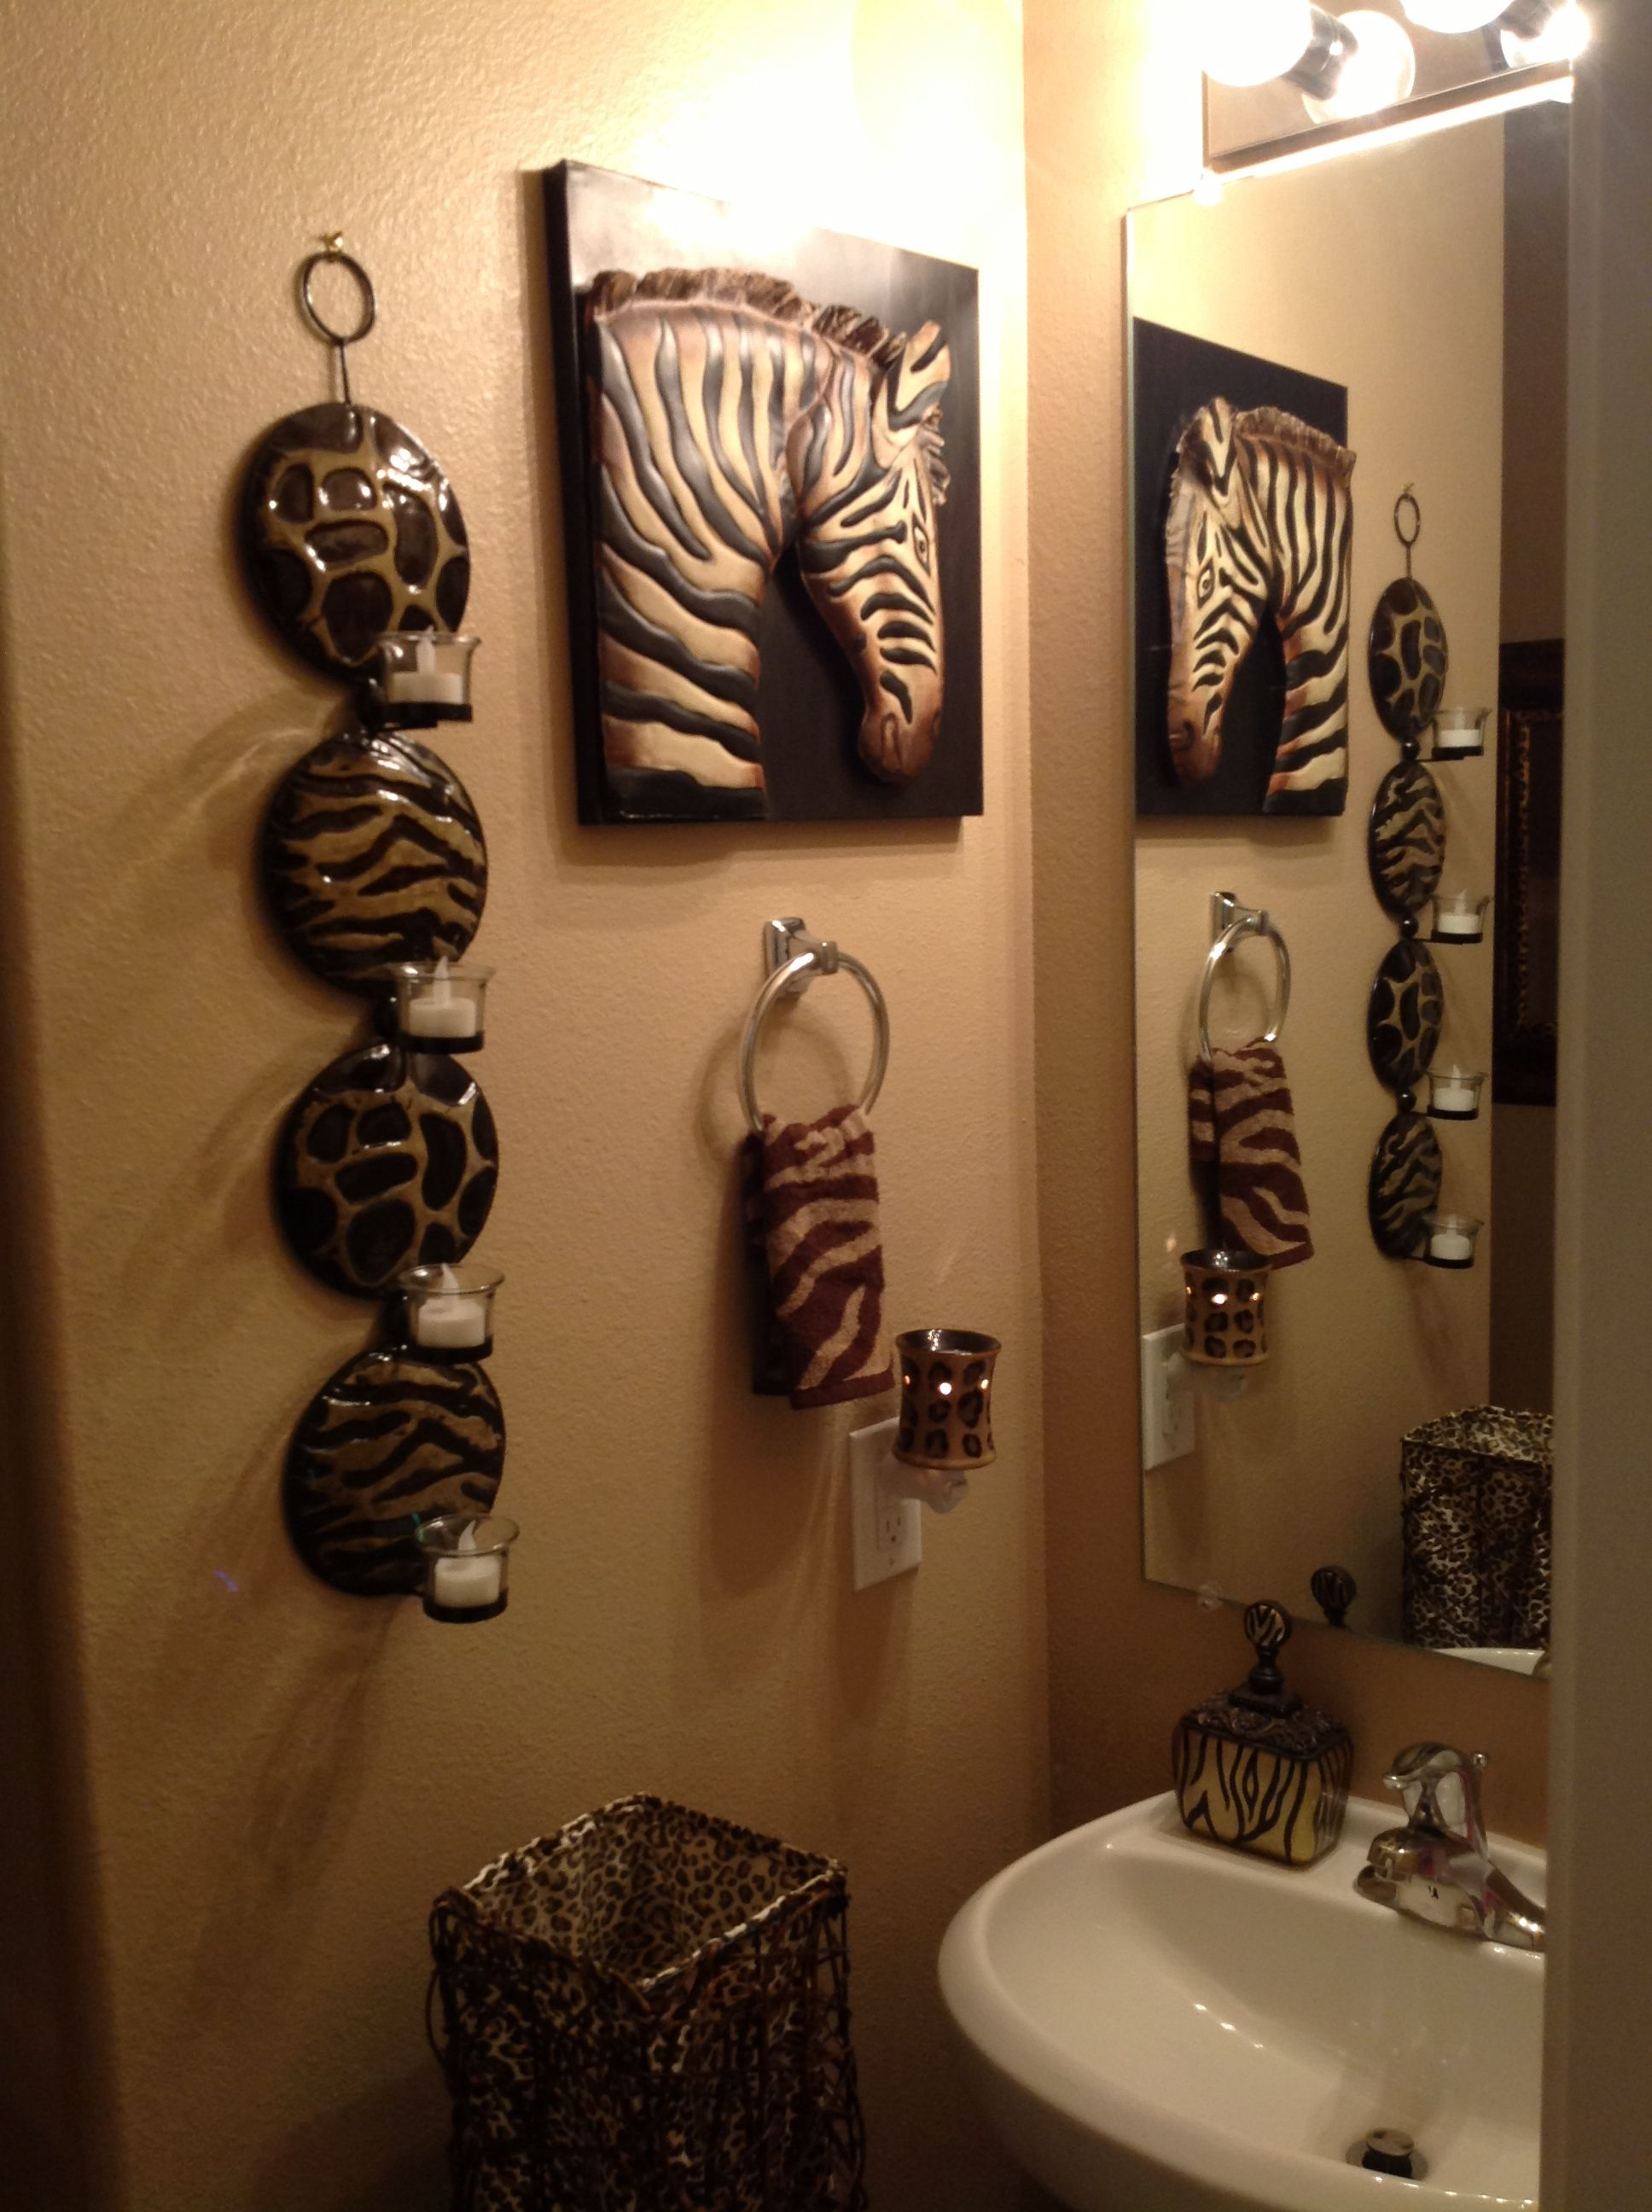 Safari bathroom safari bathroom pinterest safari for Animal themed bathroom decor